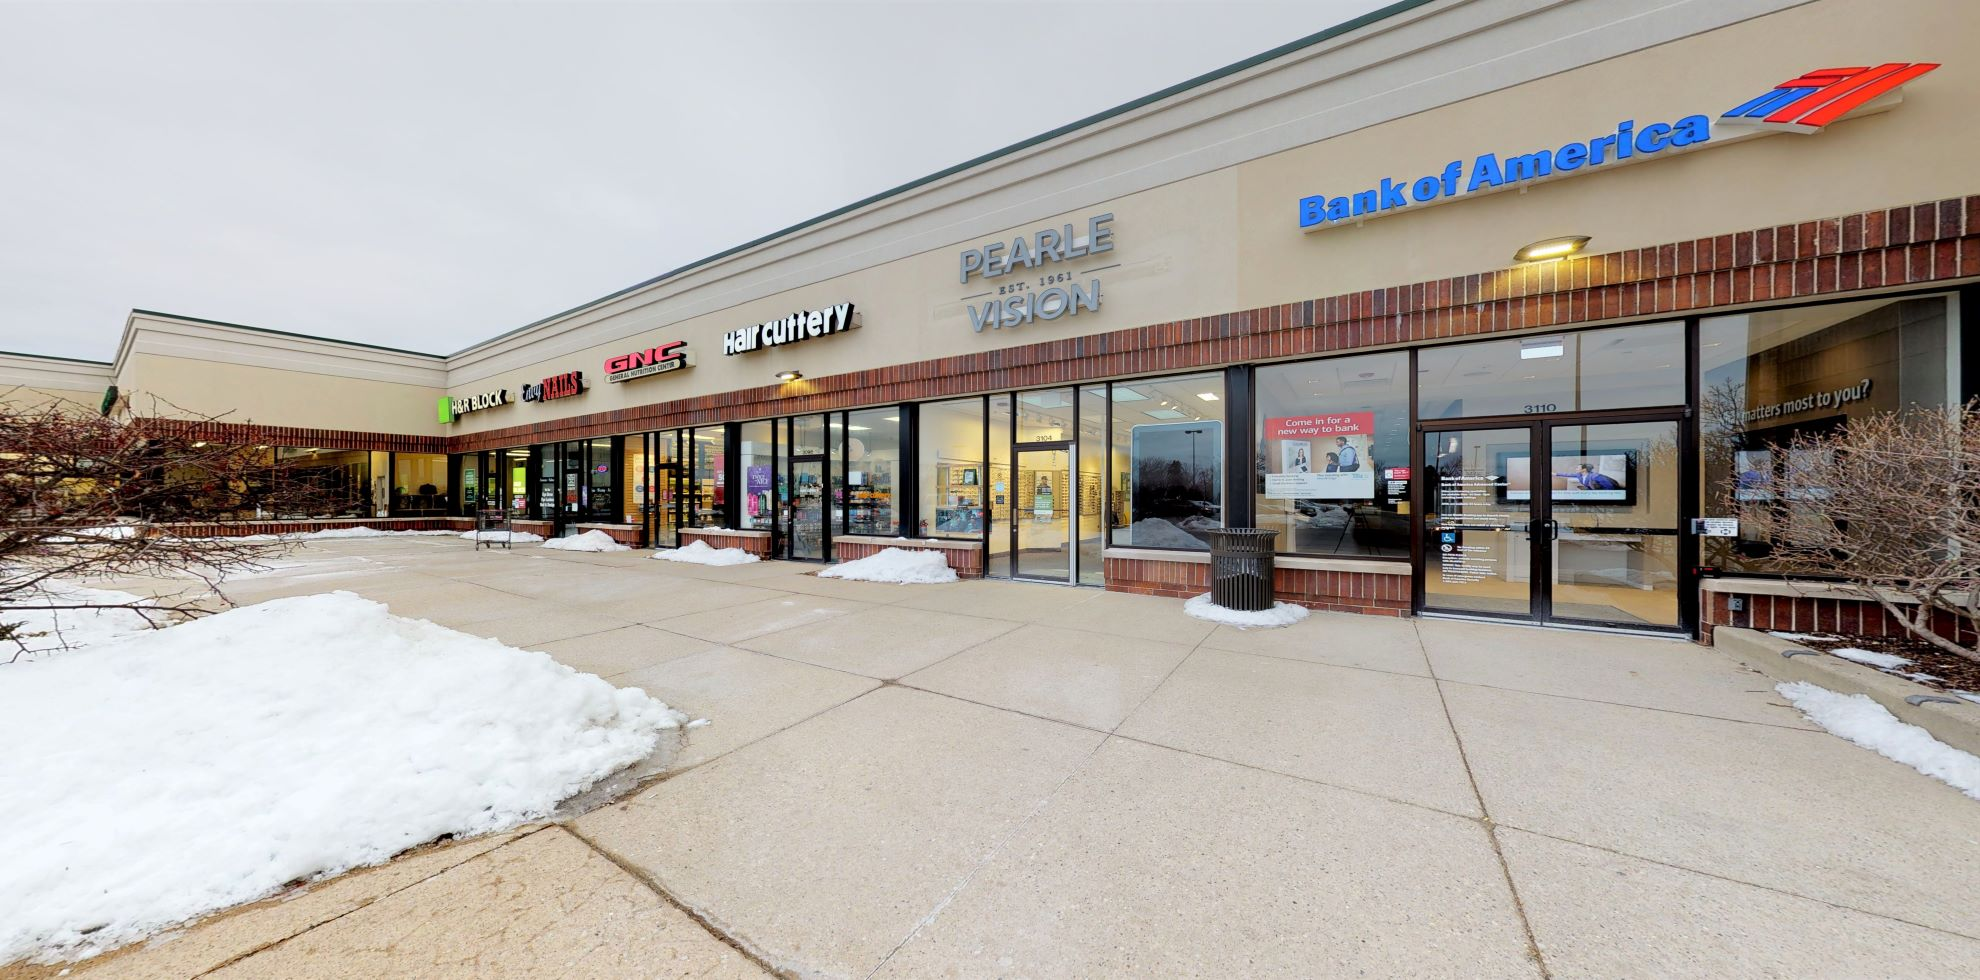 Bank of America Advanced Center with walk-up ATM | 3110 N Lewis Ave, Waukegan, IL 60087